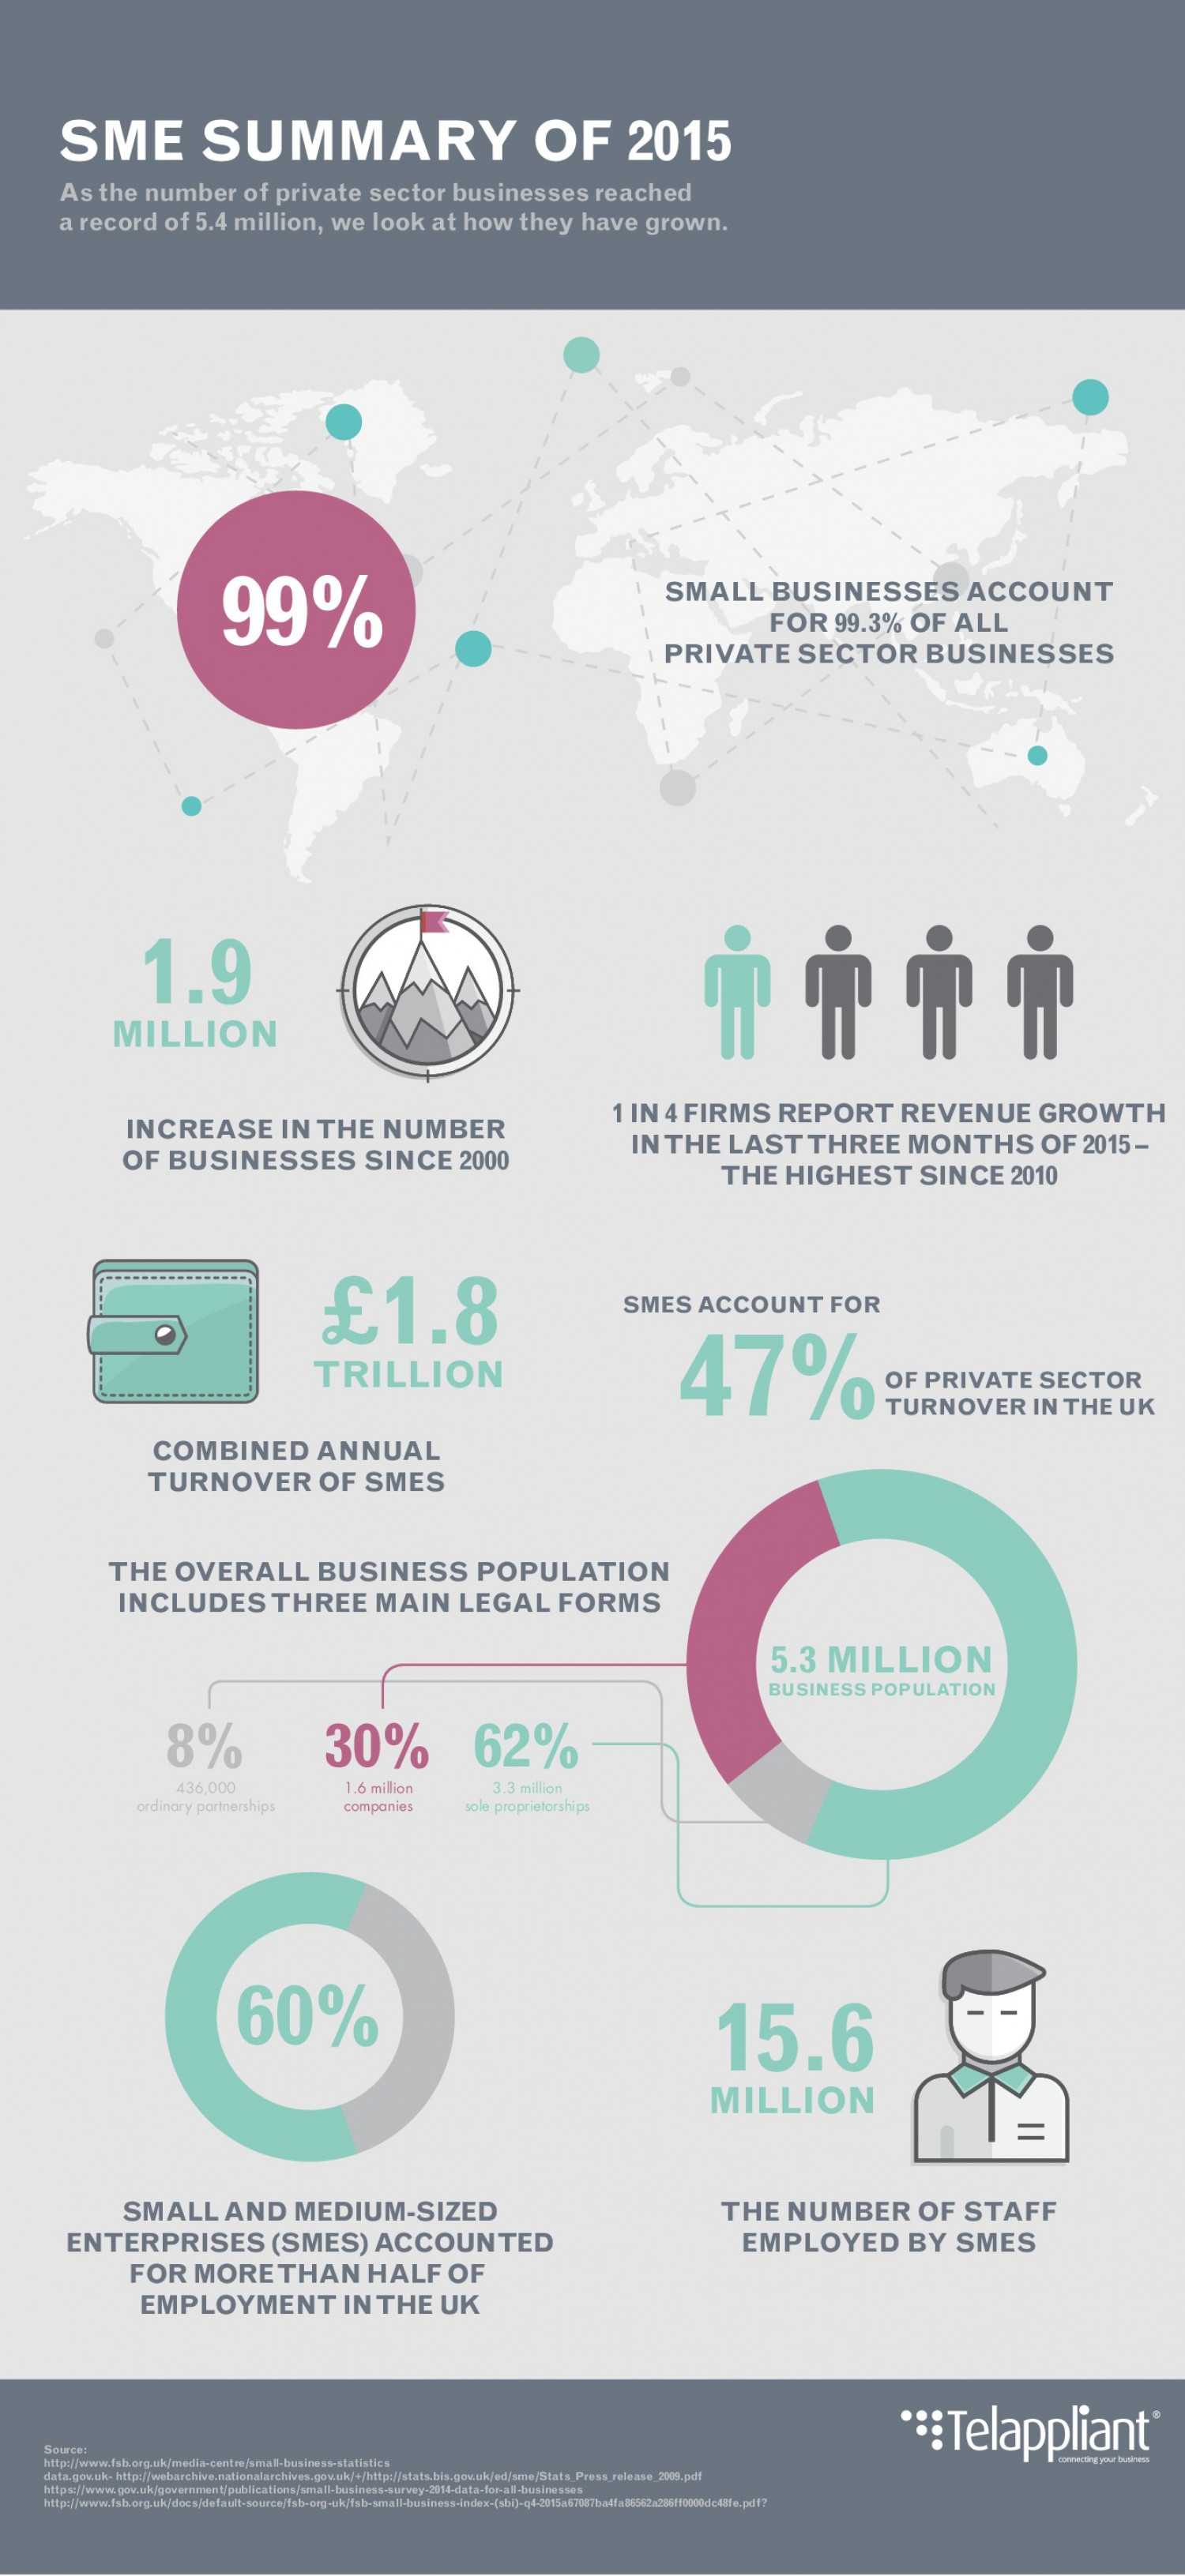 SME Summary of 2015 Infographic